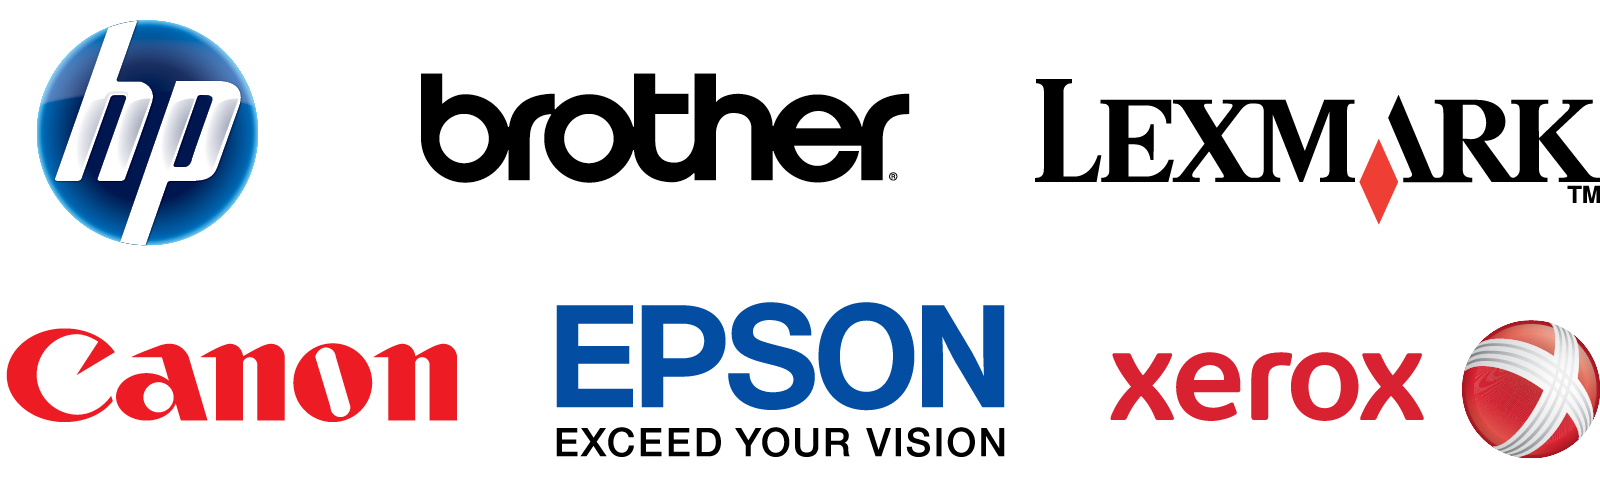 HP Brother Lexmark Canon Epson Xerox